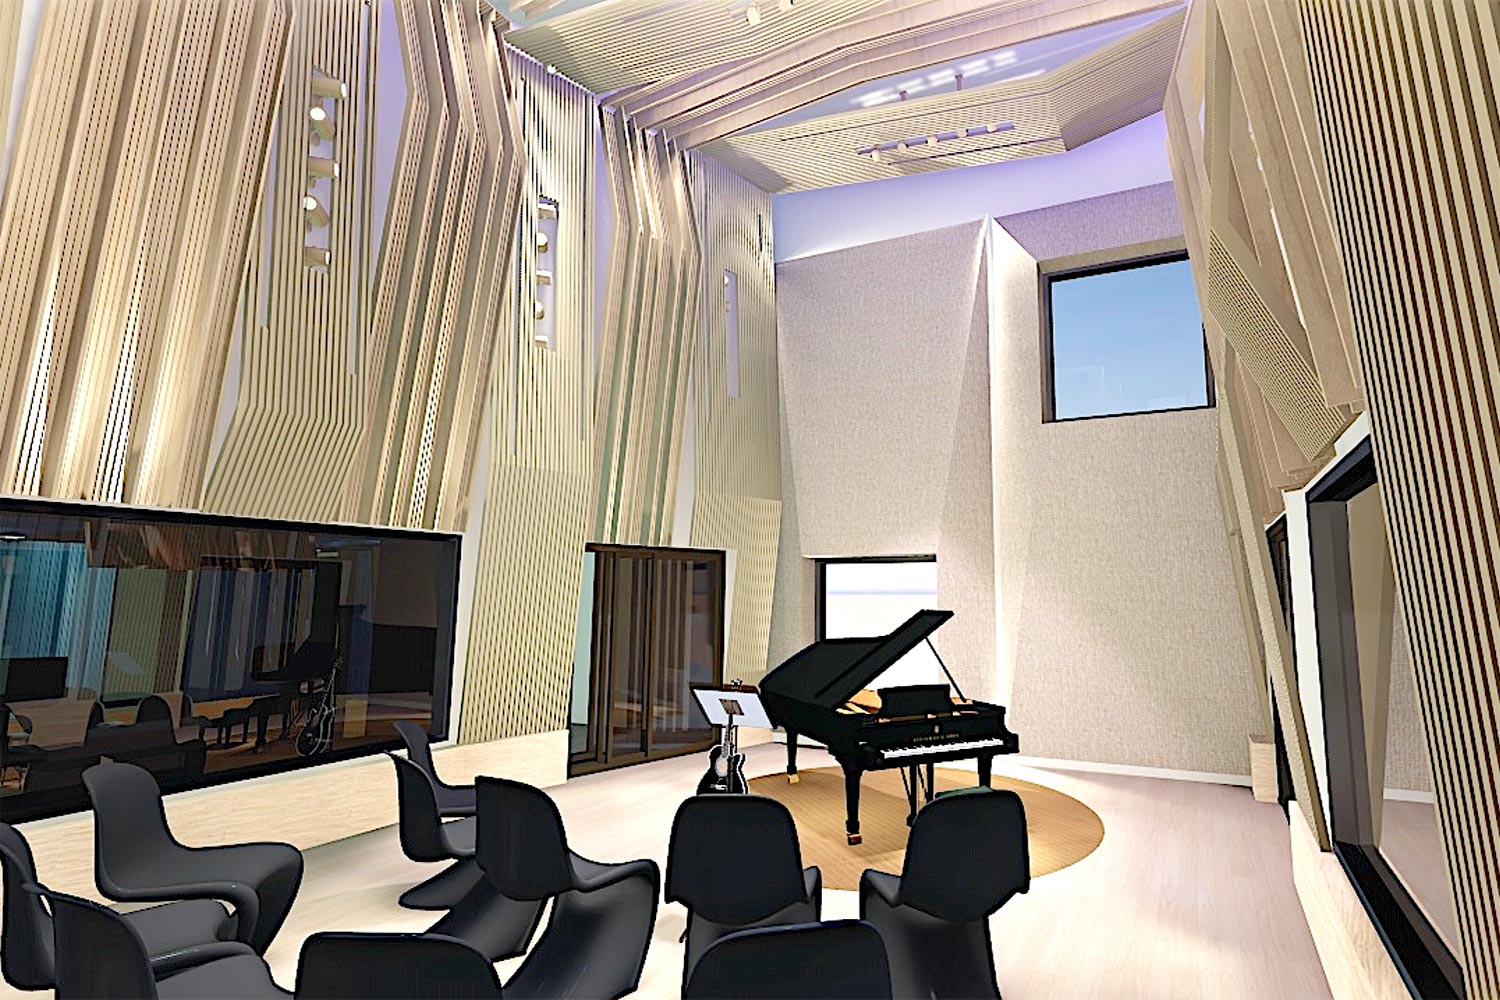 Universidad ICESI in Cali, Colombia commissioned WSDG to design their new music performance, composition and production building with world-class recording studios. Live Room Render 2.